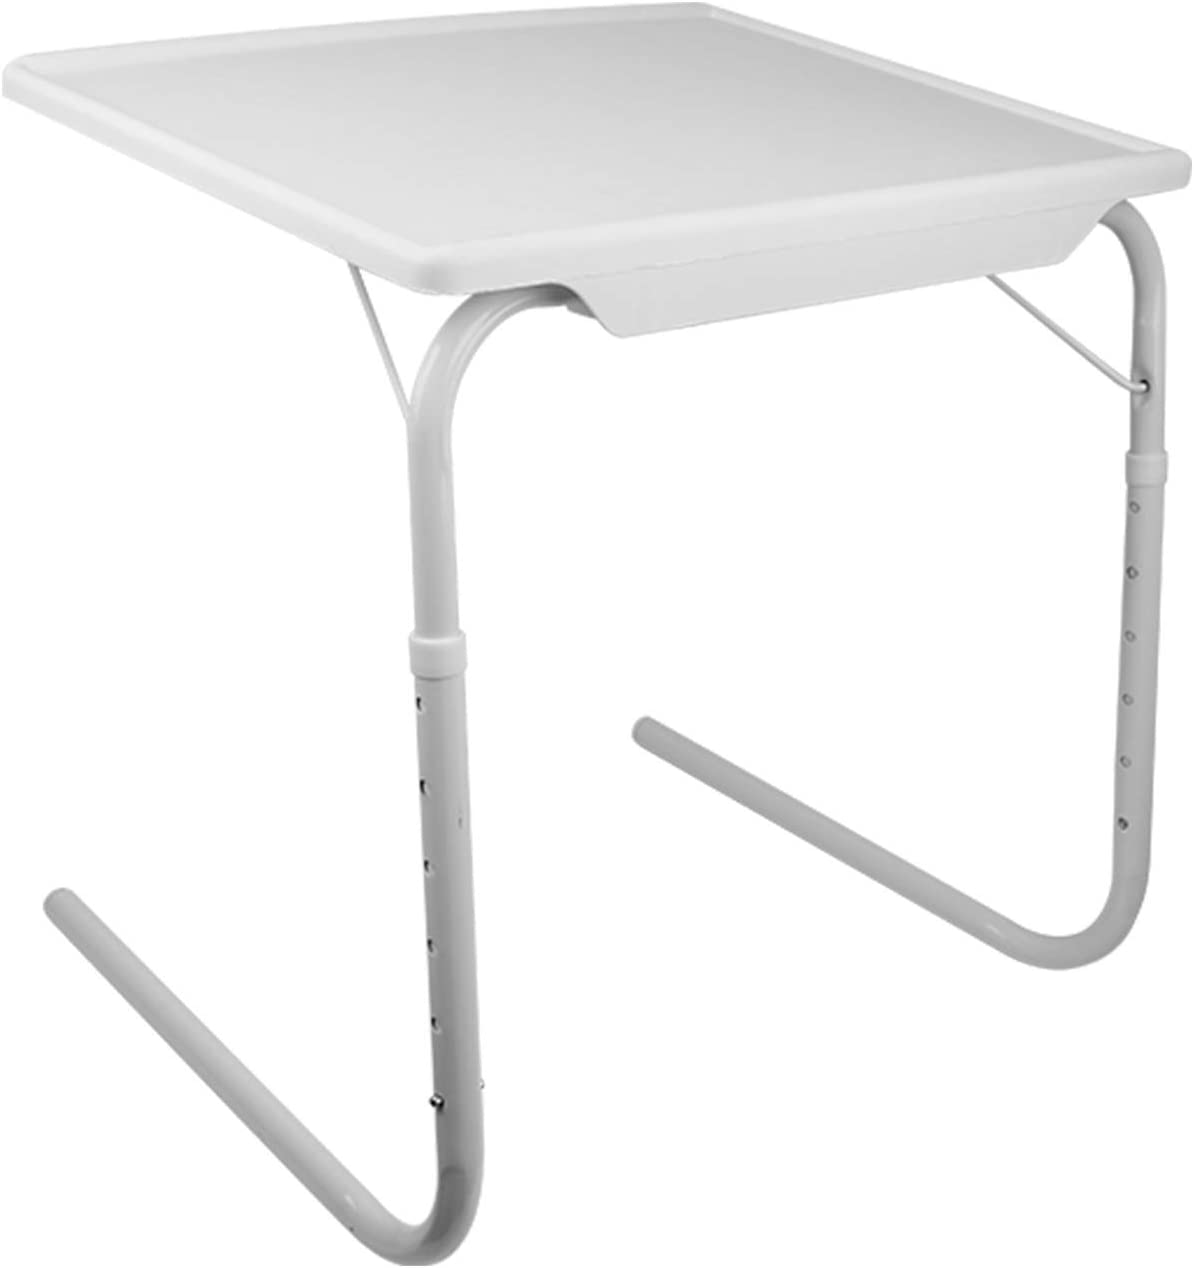 iMounTEK Portable Adjustable Tray Table 6 Height 3 Angle Desk Laptop Eating Working Gaming Dorm Home Bed Couch TV Bed Small Convenient Durable Stable